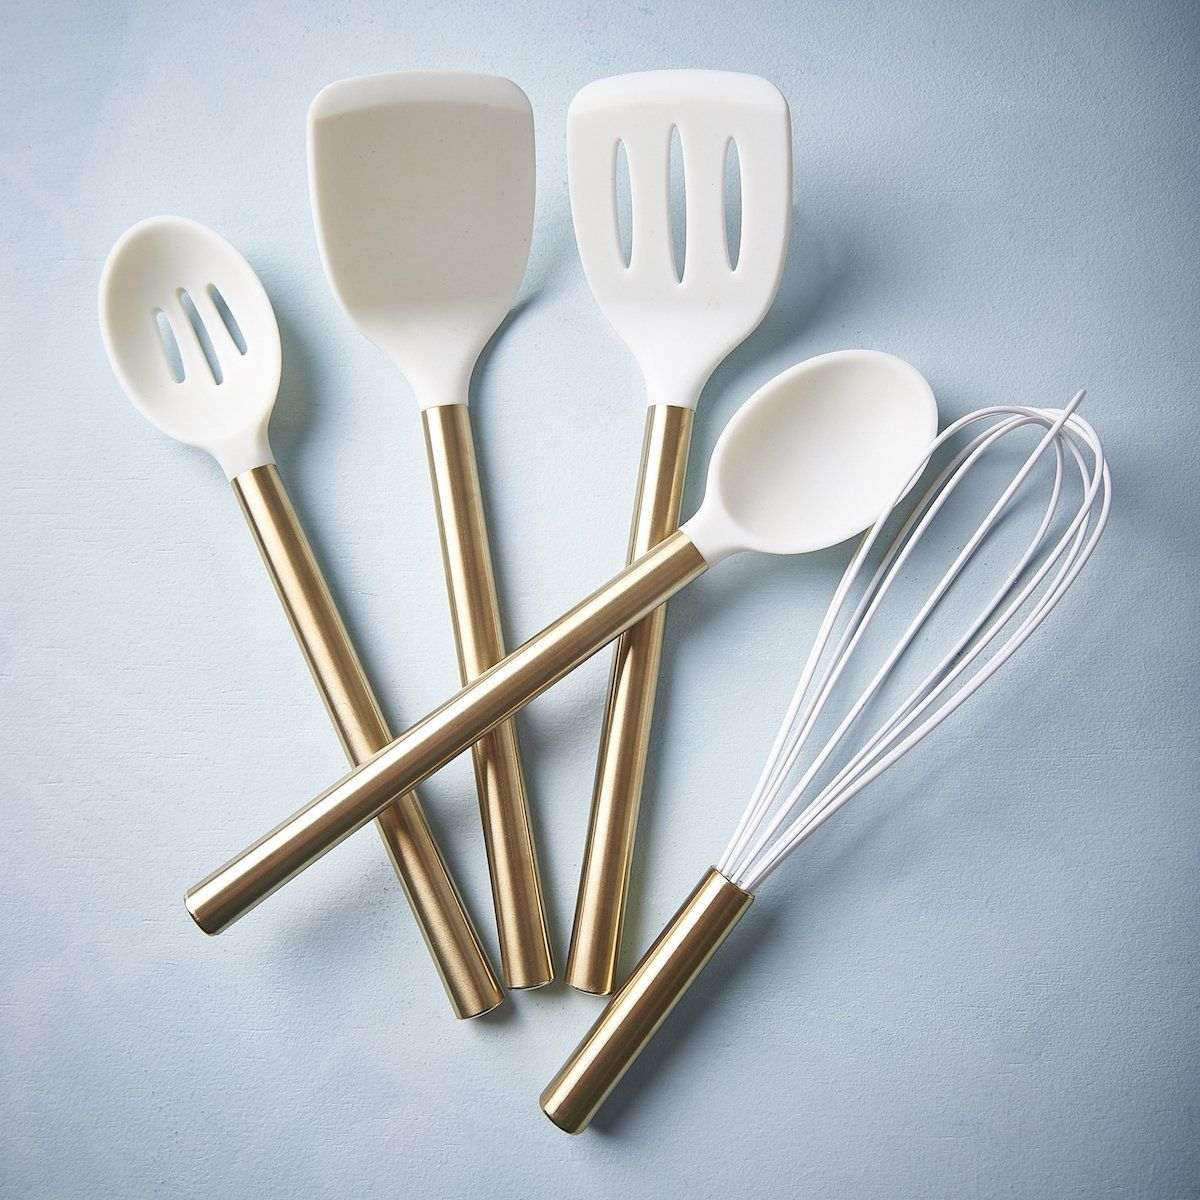 Beautiful White Silicone And Gold Utensil Set Gold Utensils Gold Kitchen Utensils Utensil Set